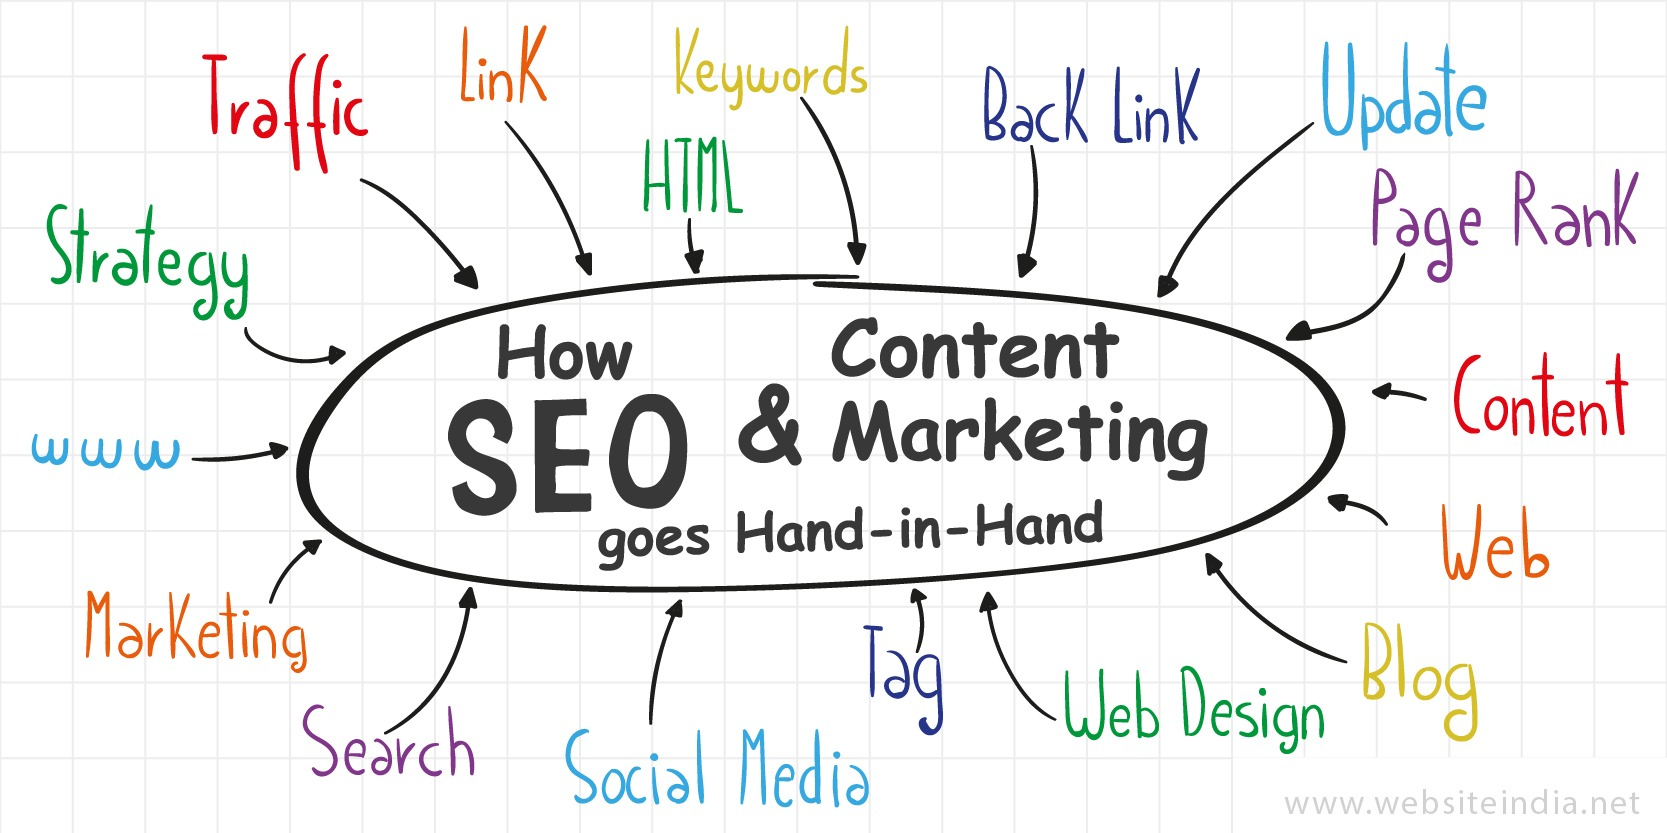 How SEO & Content Marketing goes Hand-in-Hand